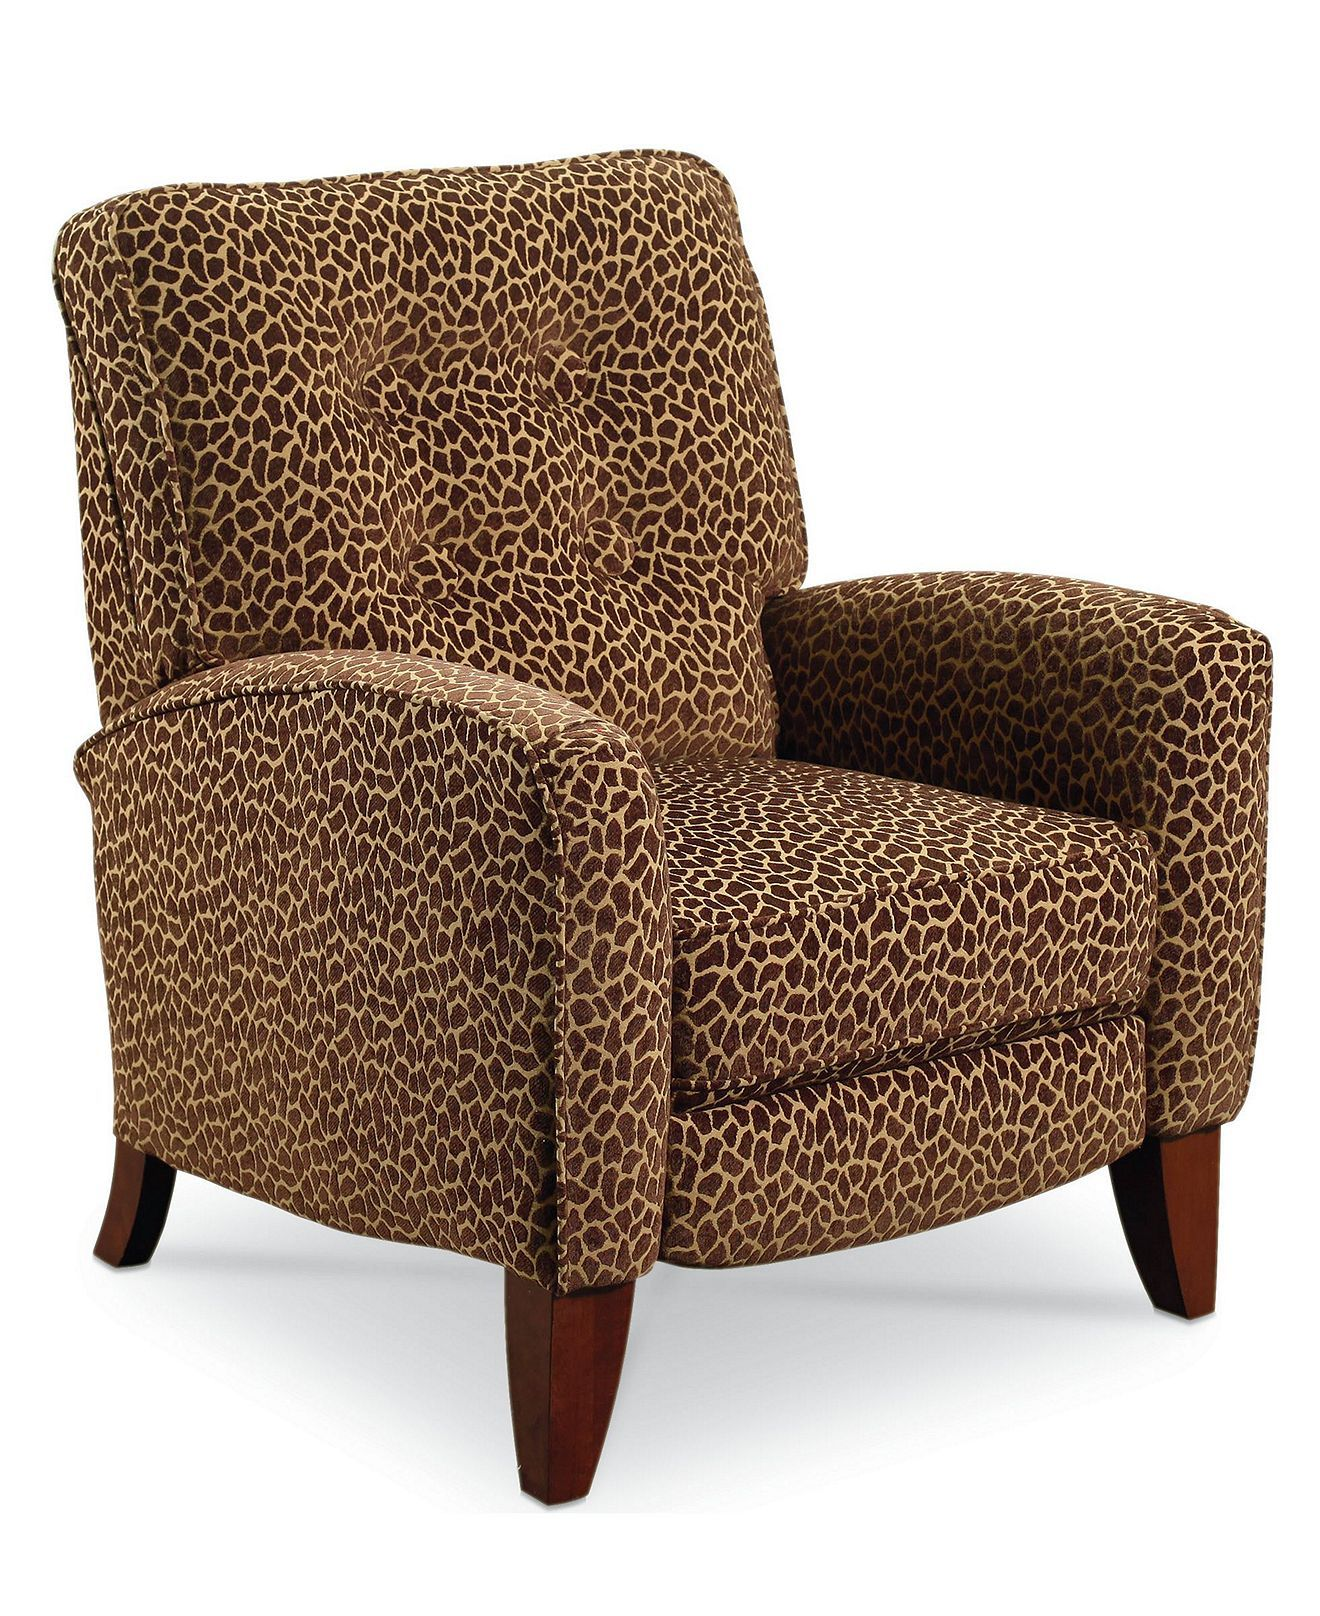 Love Animal Prints This Kind Of Chair Will Make A Great